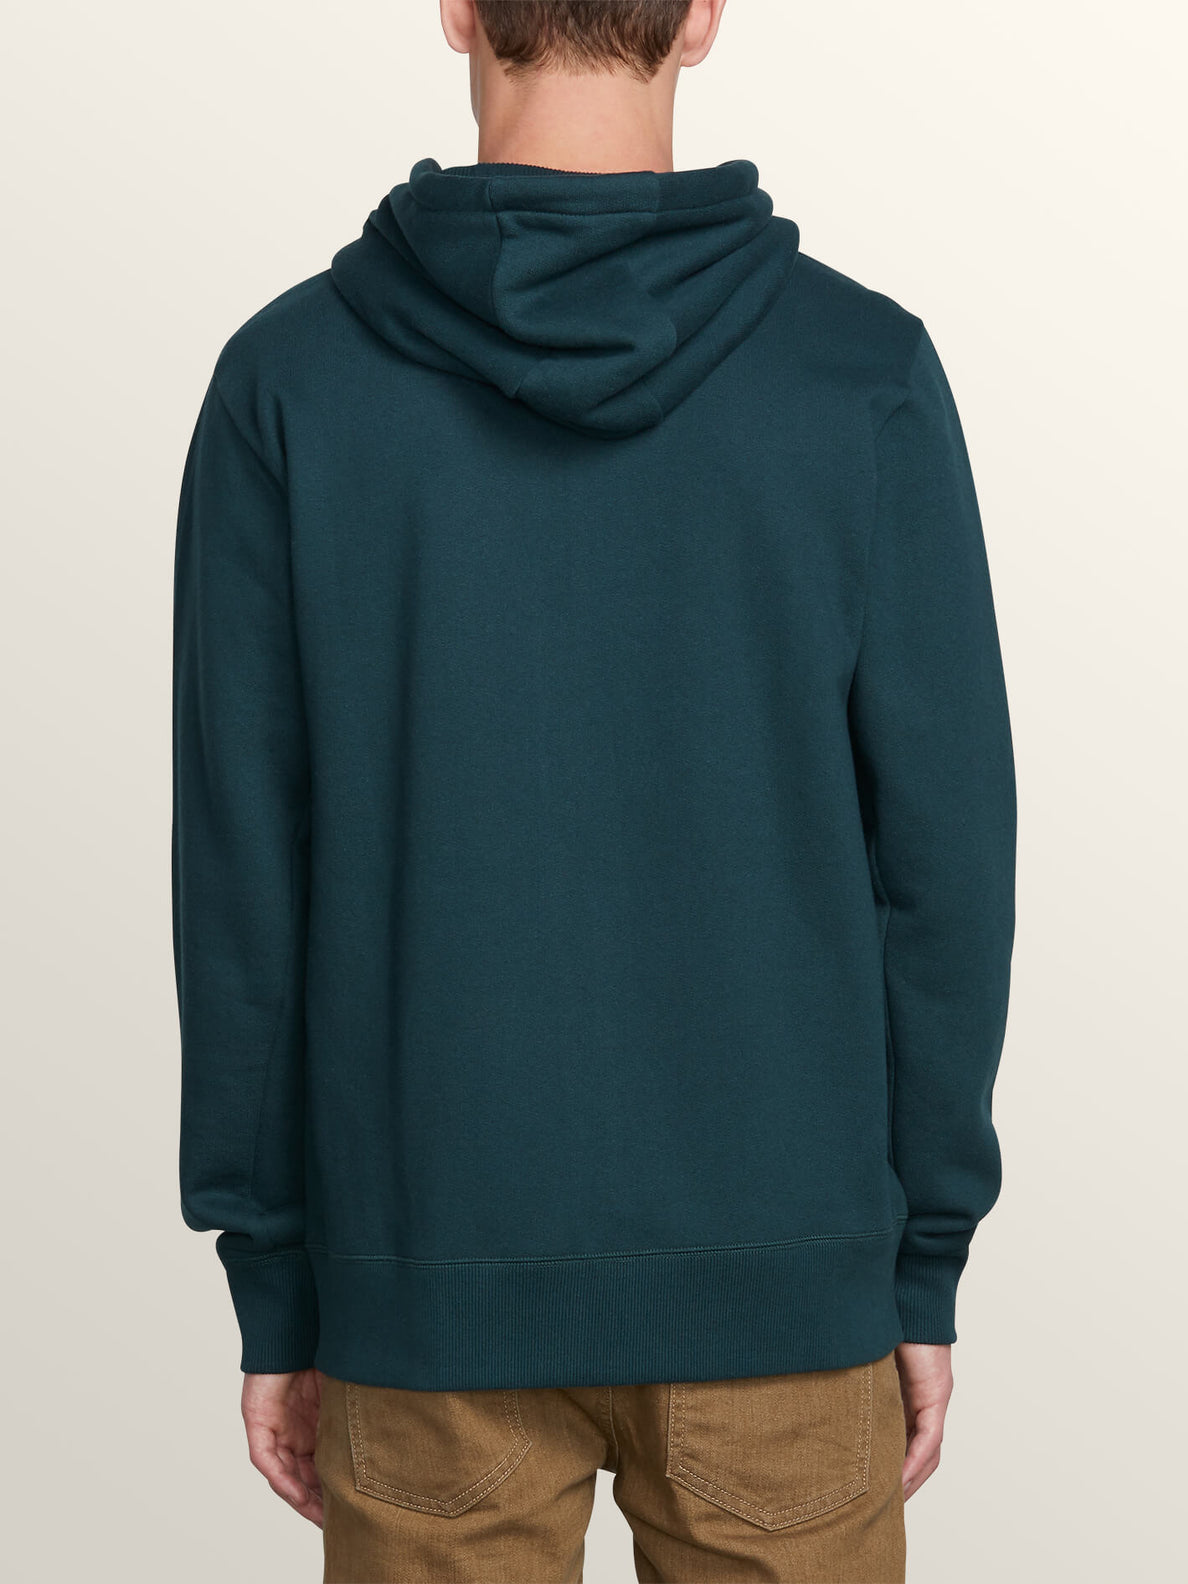 Shop Zip Hoodie In Dark Pine, Back View